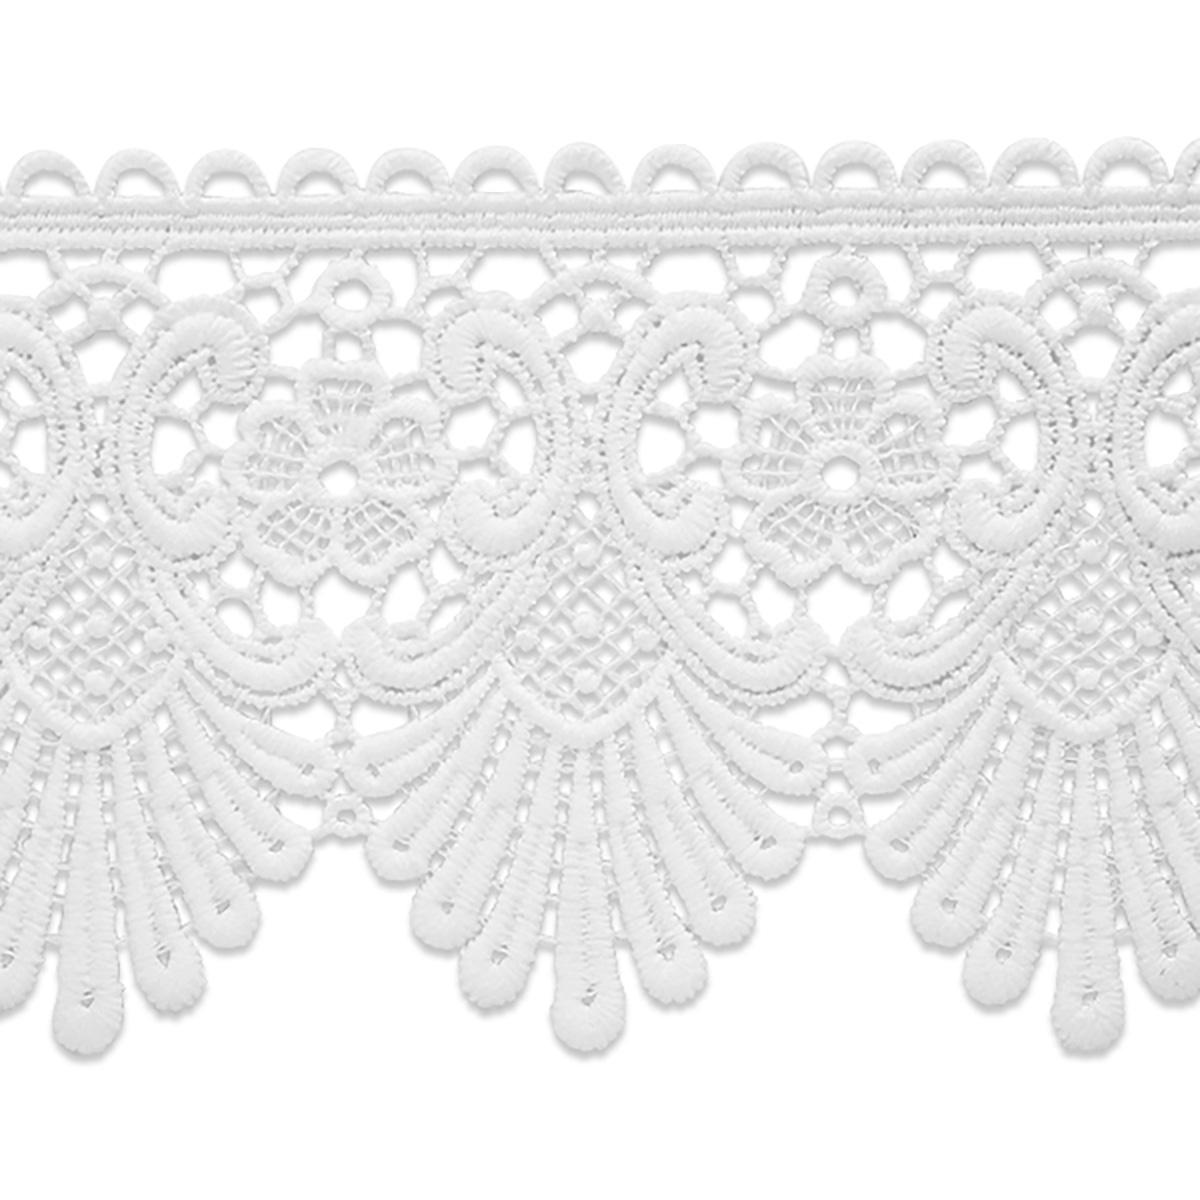 Victorian Dresses, Clothing: Patterns, Costumes, Custom Dresses Swirl  Flower Lace Trim White Precut 10 Yard $48.72 AT vintagedancer.com